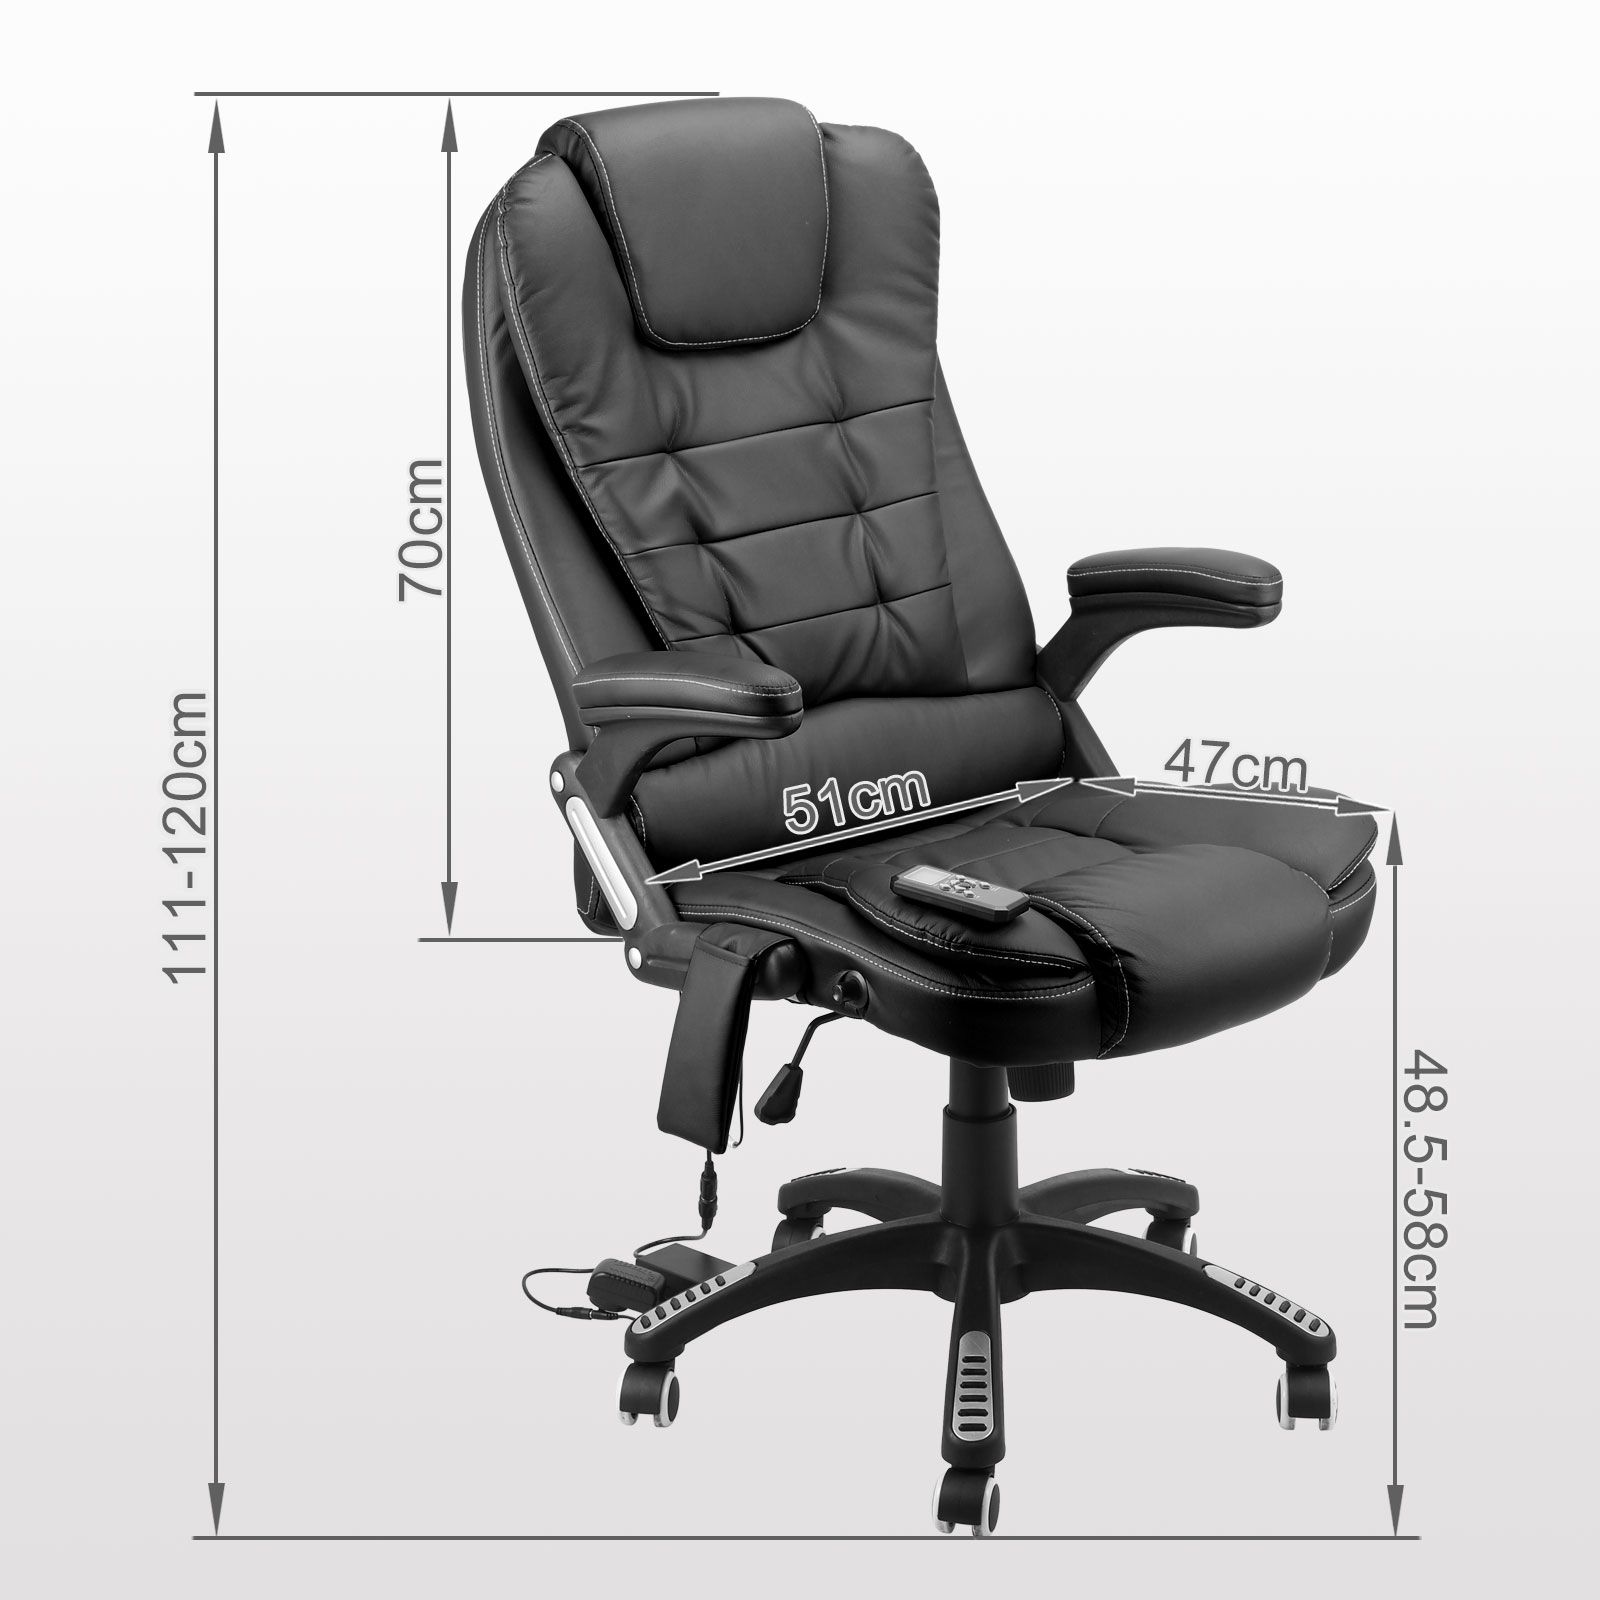 massage chair executive office computer pu leather support brown black